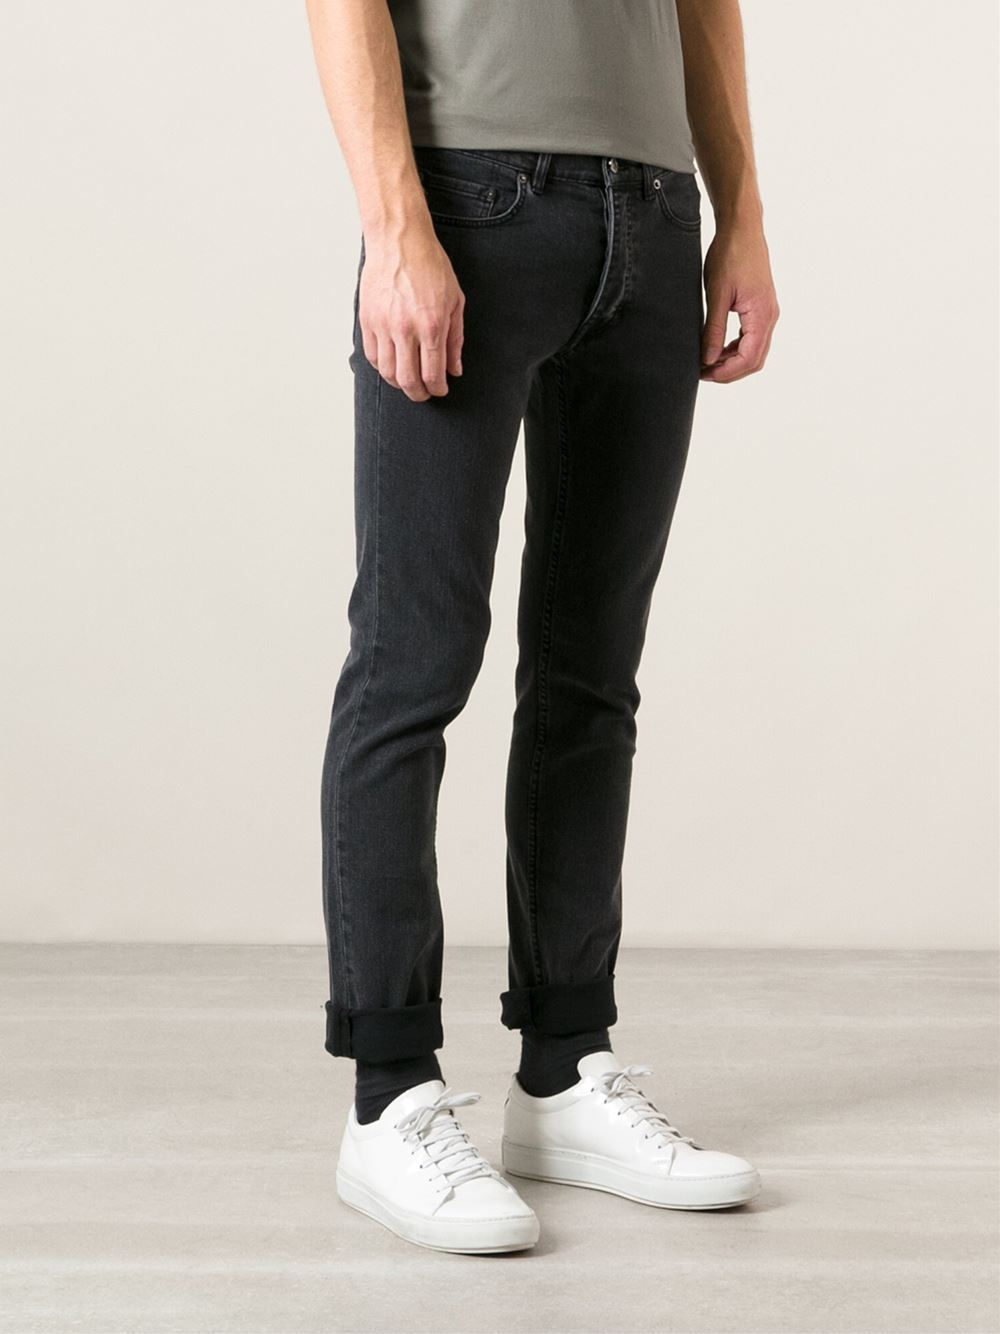 Find great deals on eBay for mens black straight leg jeans. Shop with confidence.